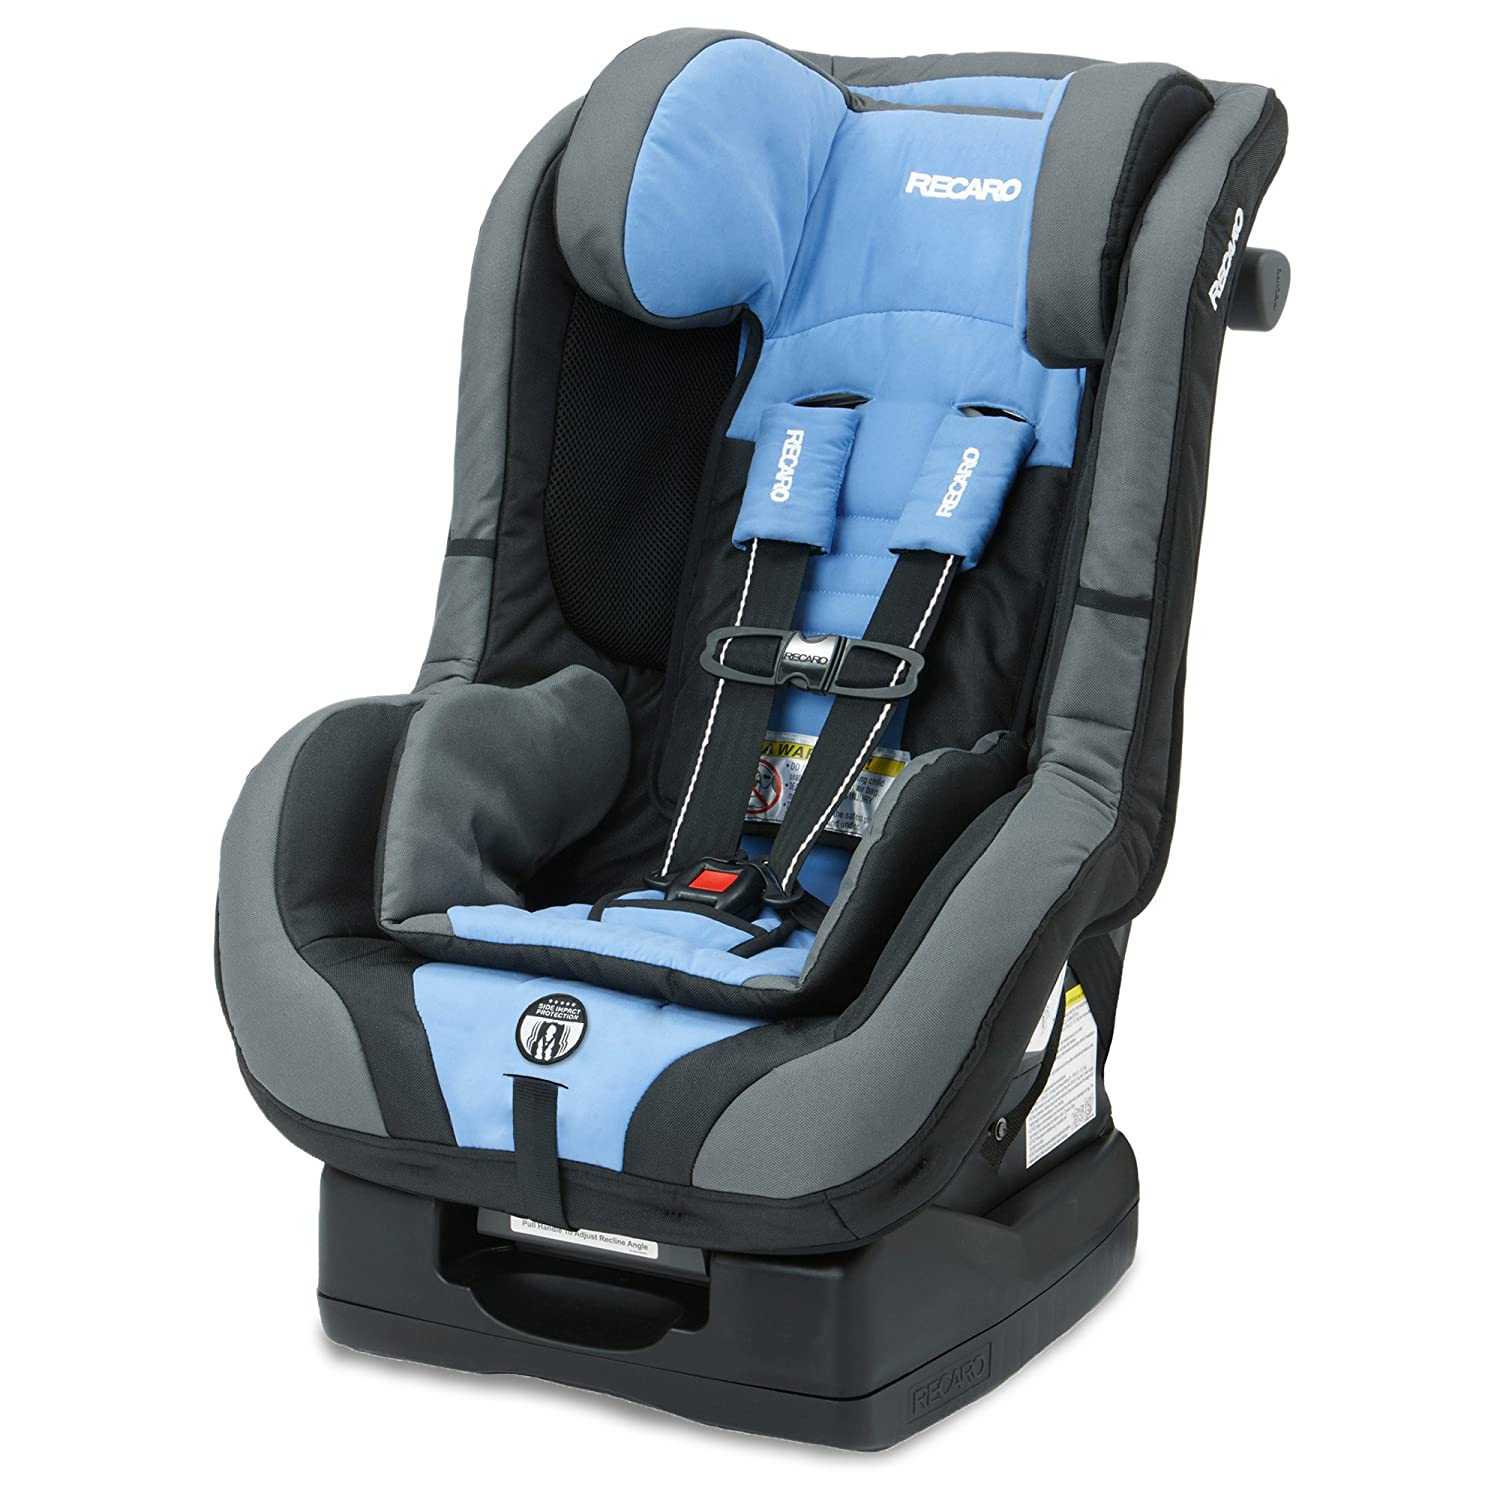 Amazon.com : RECARO ProRIDE Convertible Car SeatBlue, Opal : Baby